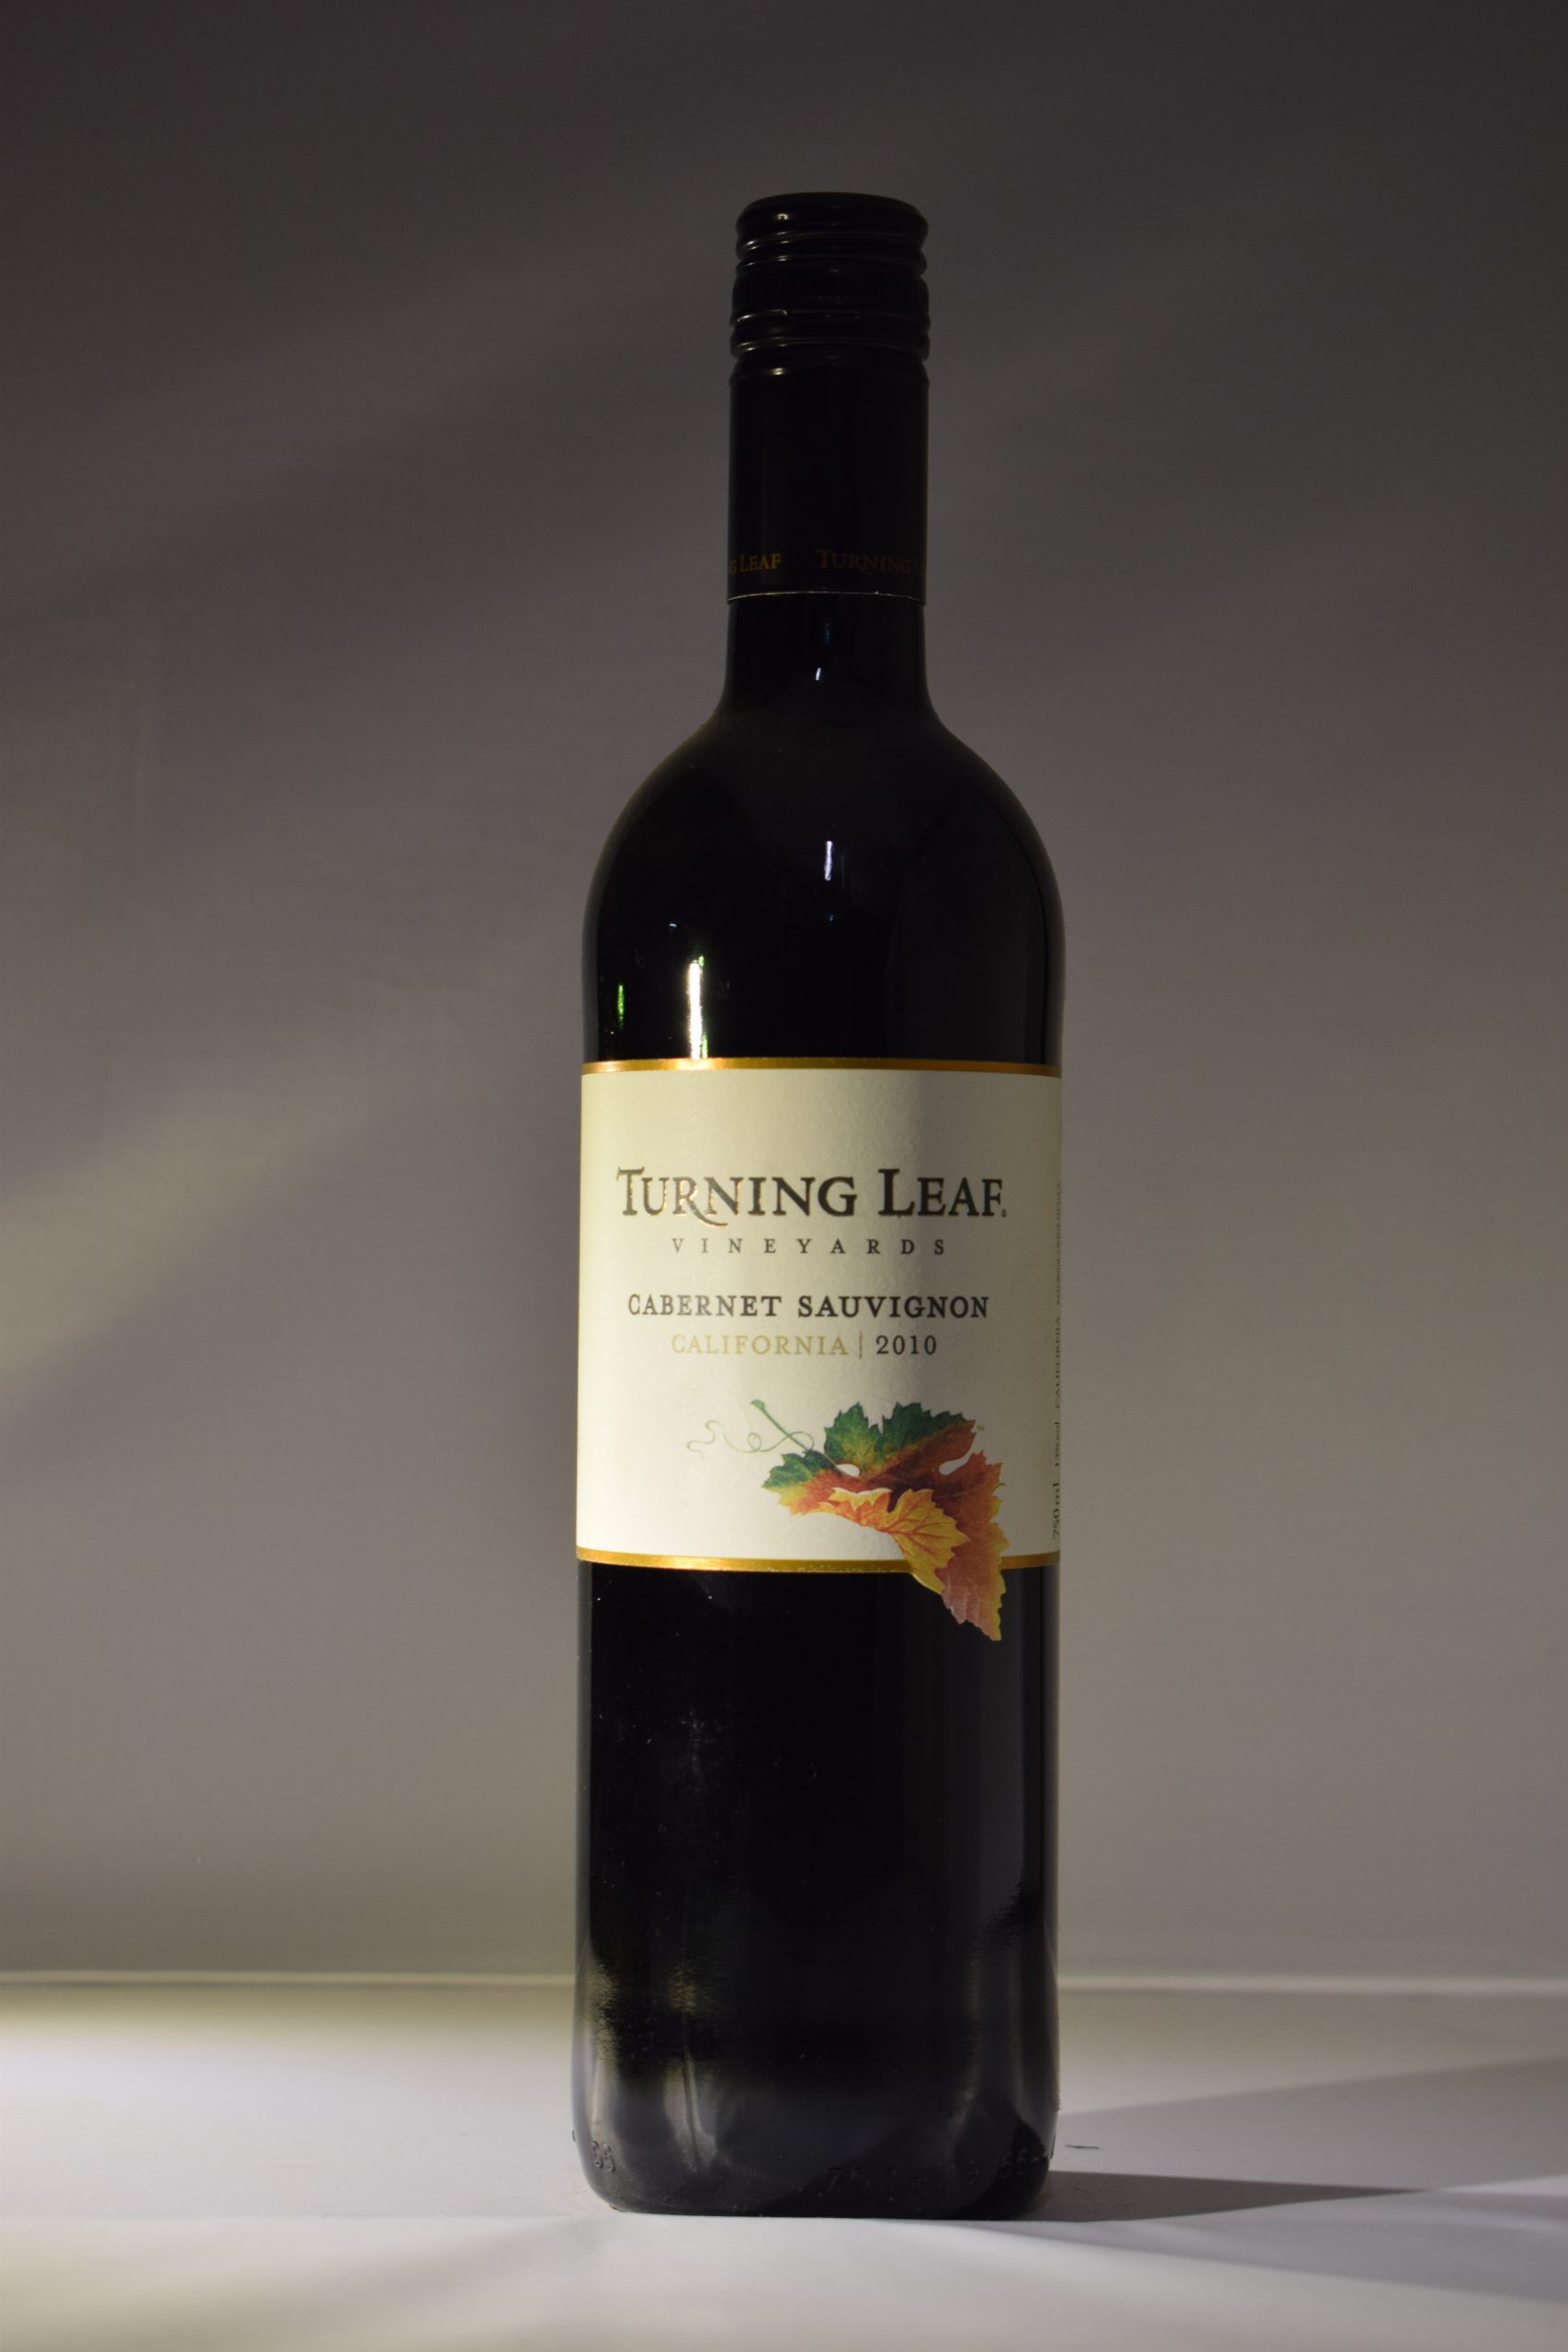 Turning Leaf Cabernet Sauvignon 2010